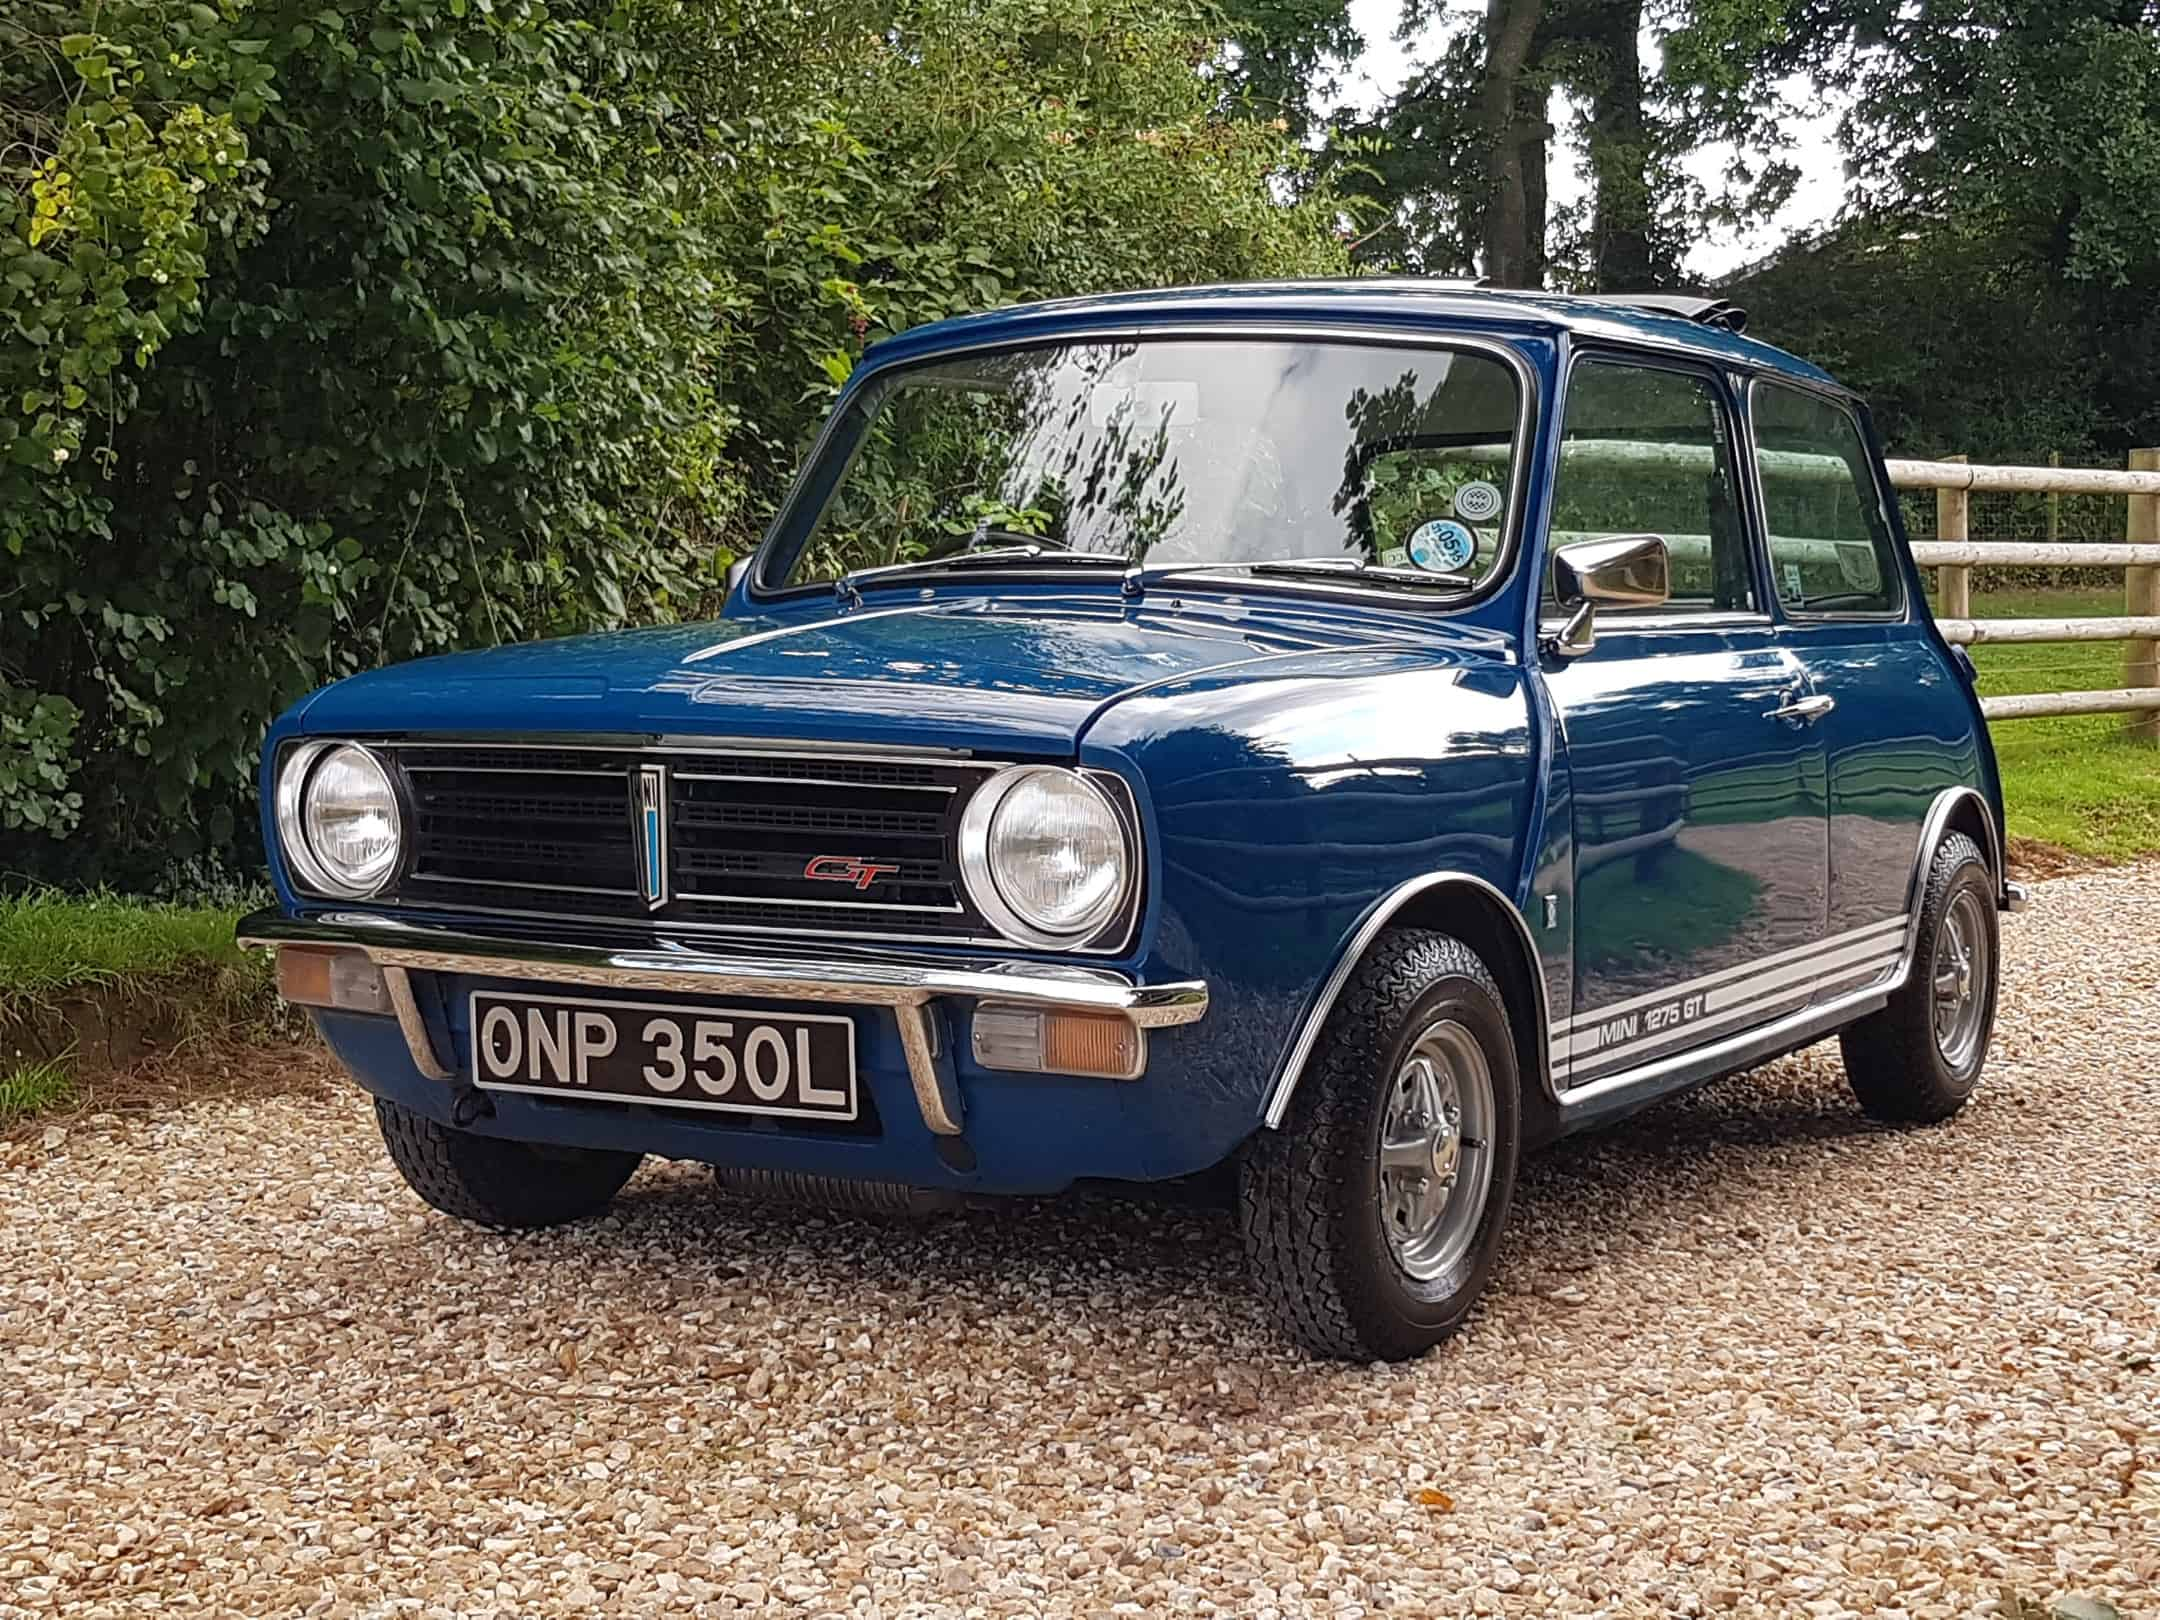 ** NOW SOLD ** 1972 Austin Mini 1275 GT ST Specification.